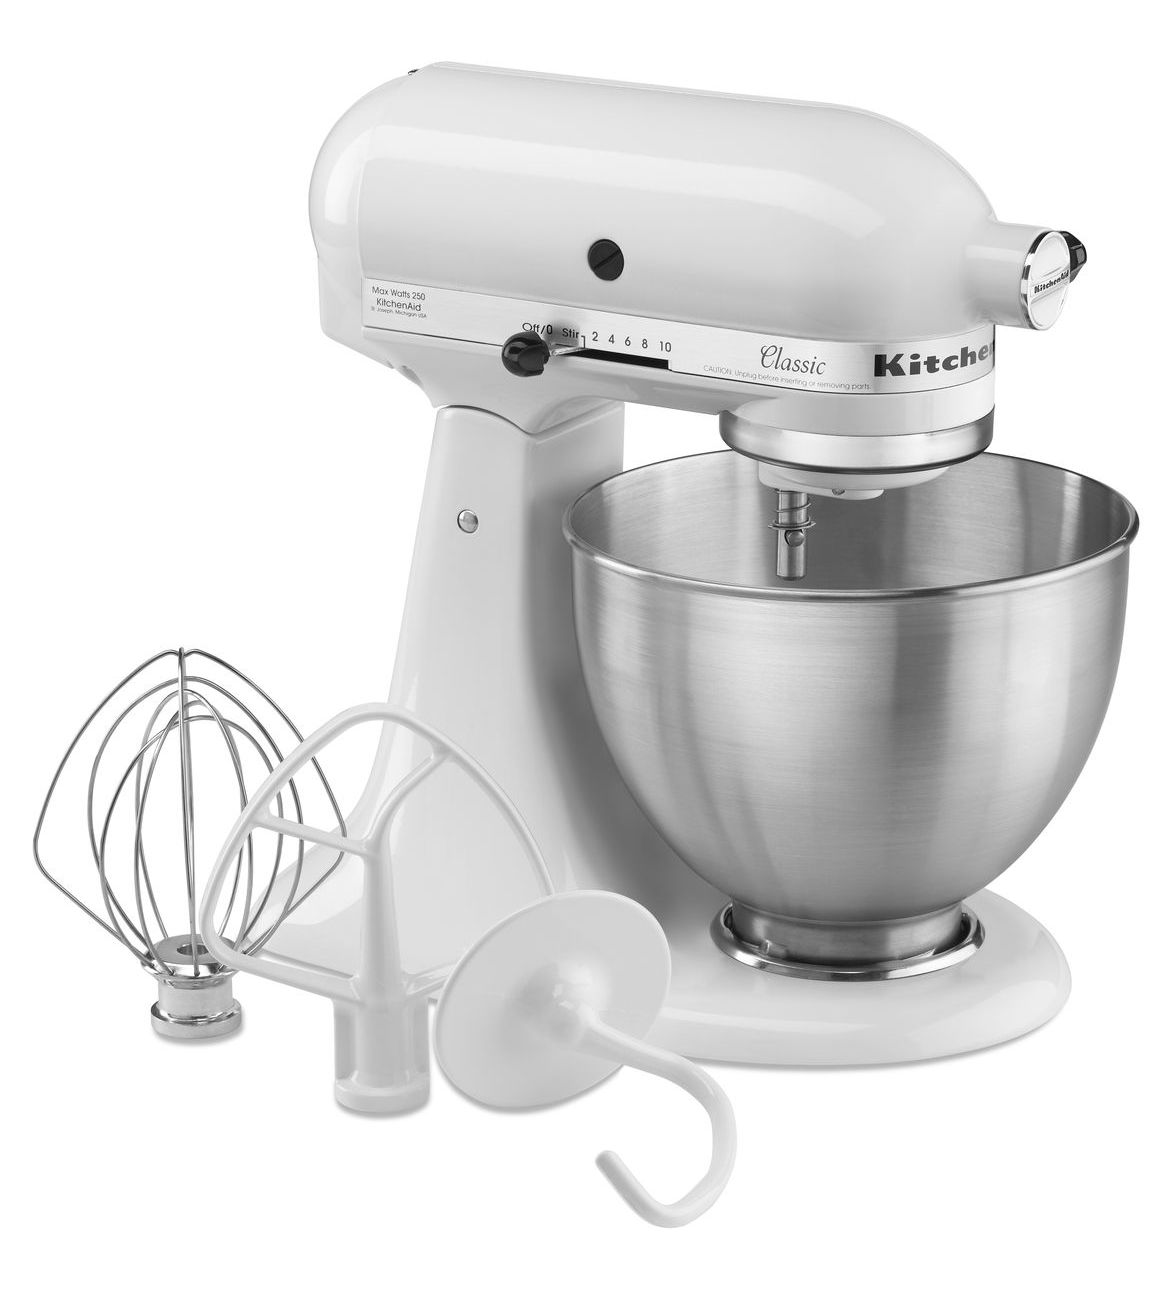 Kitchen aid mixer classic Photo - 7